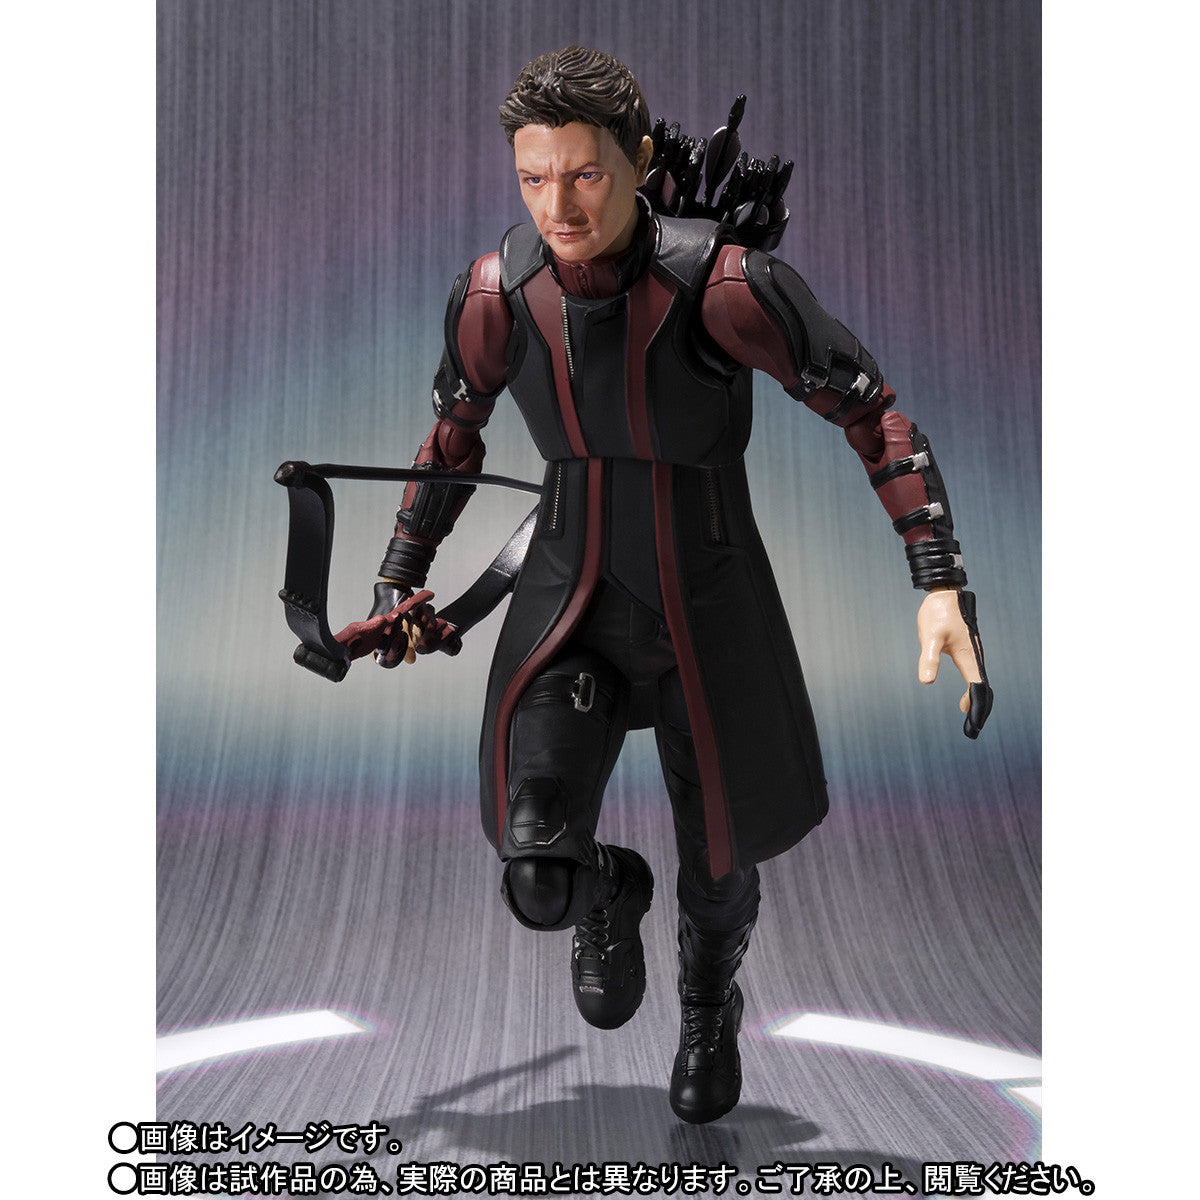 S.H.Figuarts - Avengers: Age of Ultron - Hawkeye (TamashiiWeb Exclusive) - Marvelous Toys - 1